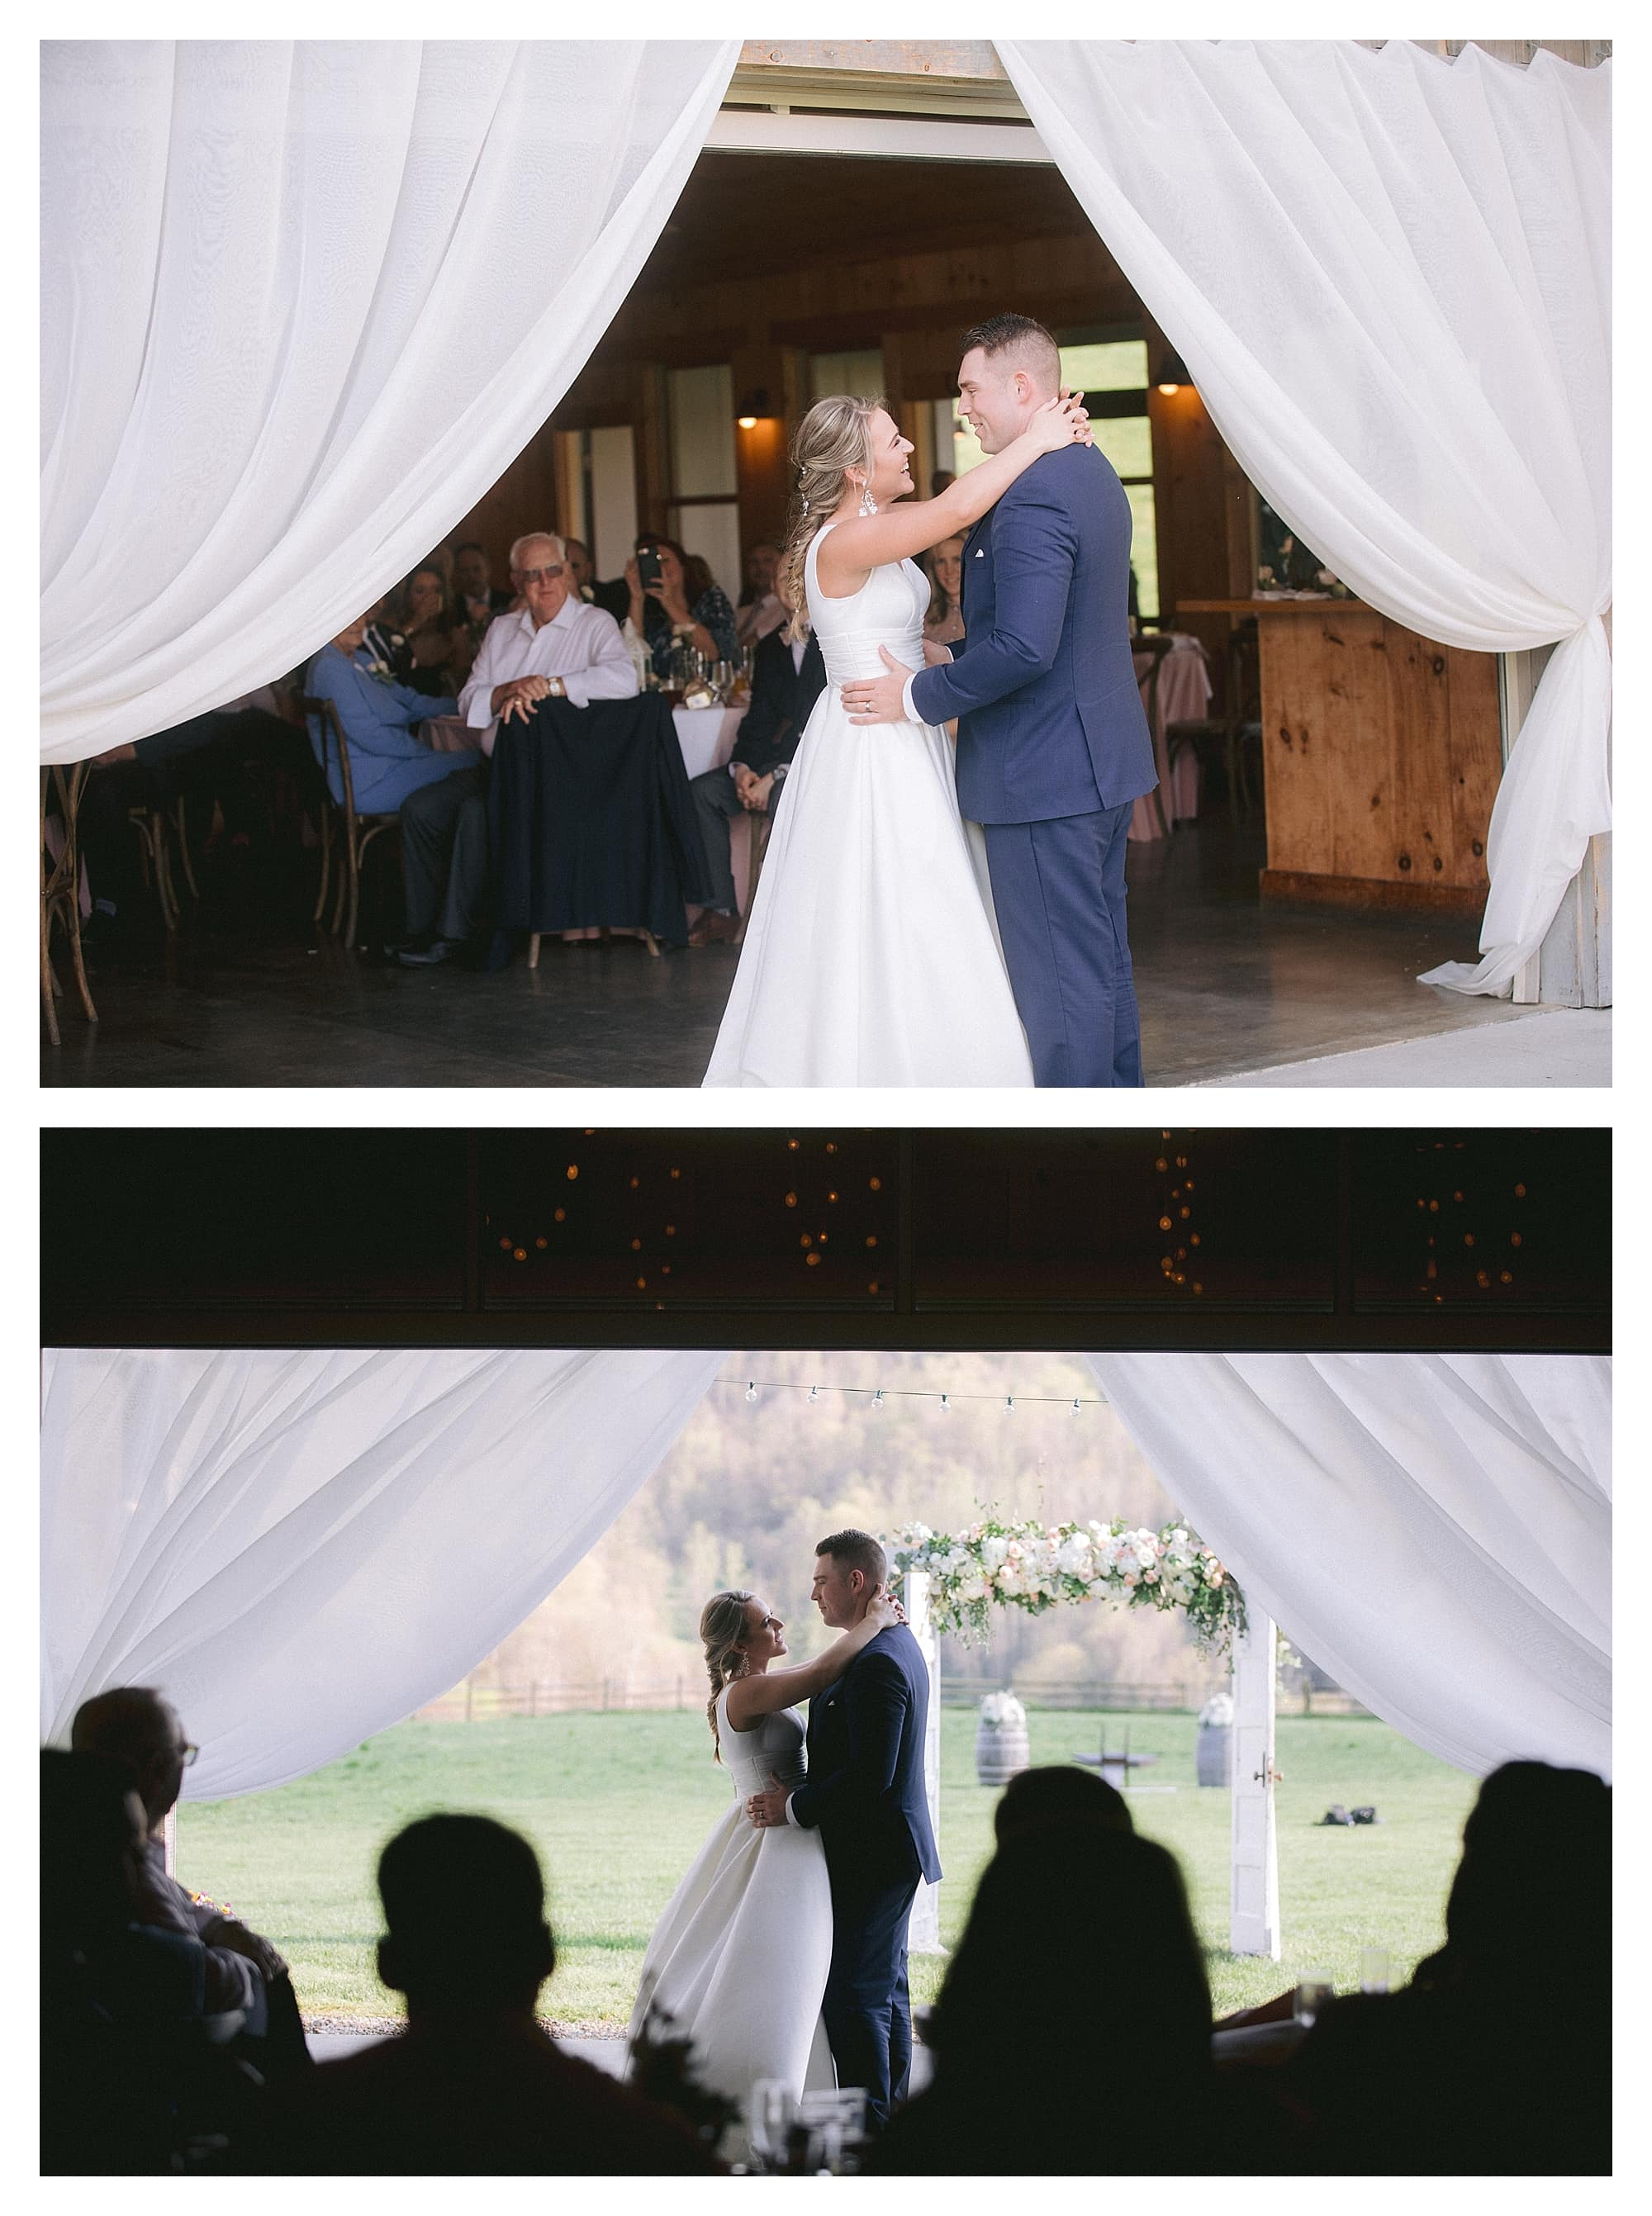 Bride and grooms first dance at wedding reception